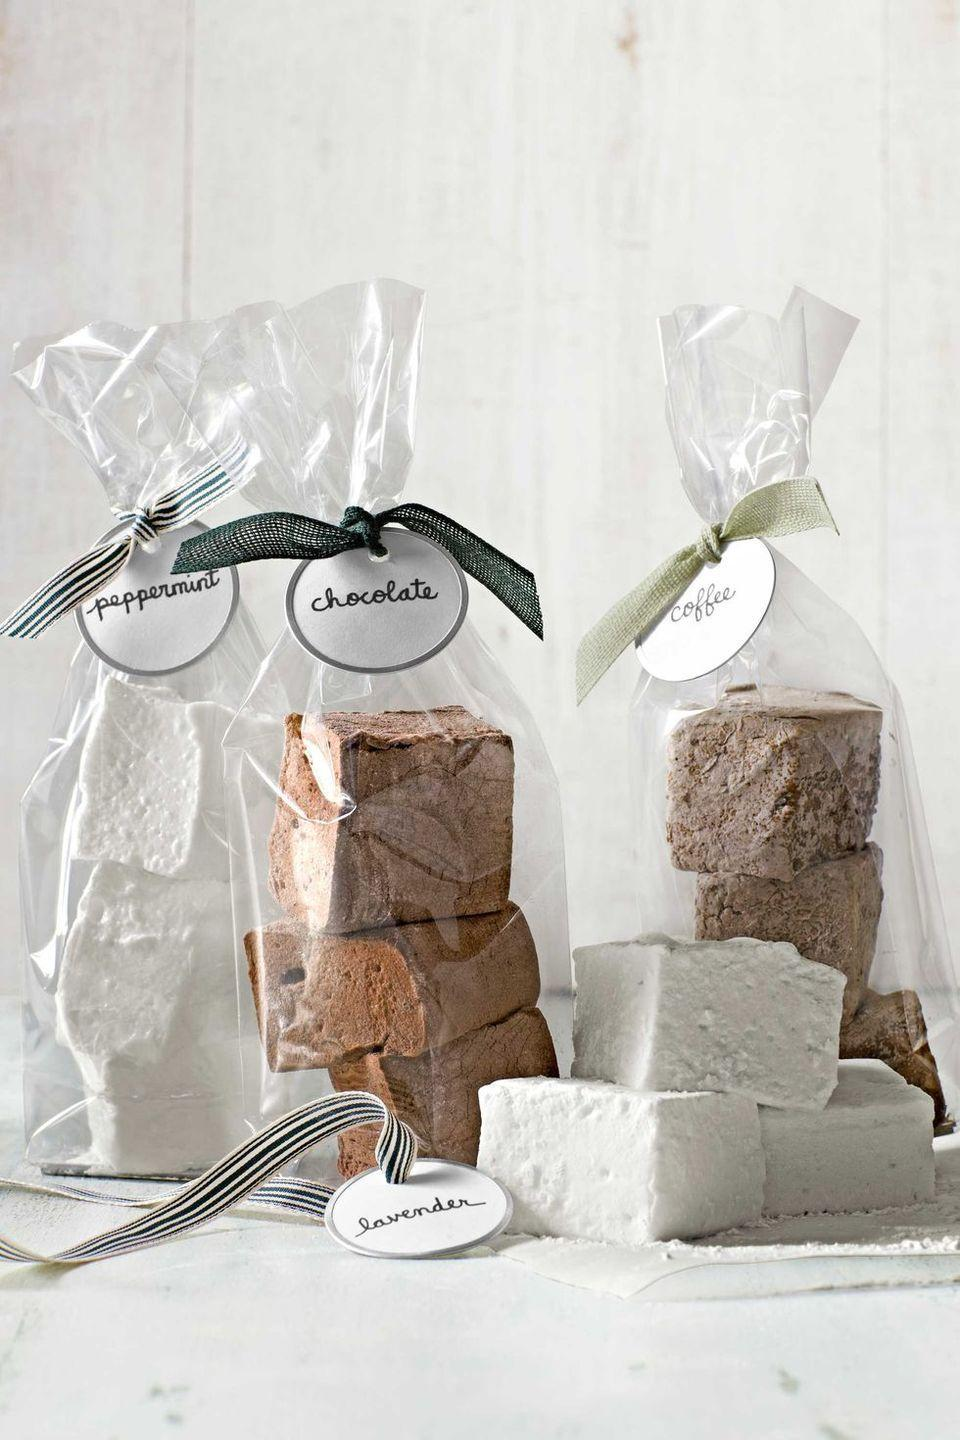 """<p>Make Christmas presents for a crowd by baking a batch of these gourmet marshmallows, then packaging them in a glassine bag. </p><p><strong><a href=""""https://www.countryliving.com/food-drinks/recipes/a4130/gourmet-marshmallows-recipe-clv1212/"""" rel=""""nofollow noopener"""" target=""""_blank"""" data-ylk=""""slk:Get the recipe."""" class=""""link rapid-noclick-resp"""">Get the recipe.</a></strong> </p><p><a class=""""link rapid-noclick-resp"""" href=""""https://www.amazon.com/Resealable-Cellophane-Bakery-Candle-UNIQUEPACKING/dp/B018HFT6TK/?tag=syn-yahoo-20&ascsubtag=%5Bartid%7C10050.g.645%5Bsrc%7Cyahoo-us"""" rel=""""nofollow noopener"""" target=""""_blank"""" data-ylk=""""slk:SHOP BAGS"""">SHOP BAGS</a></p>"""